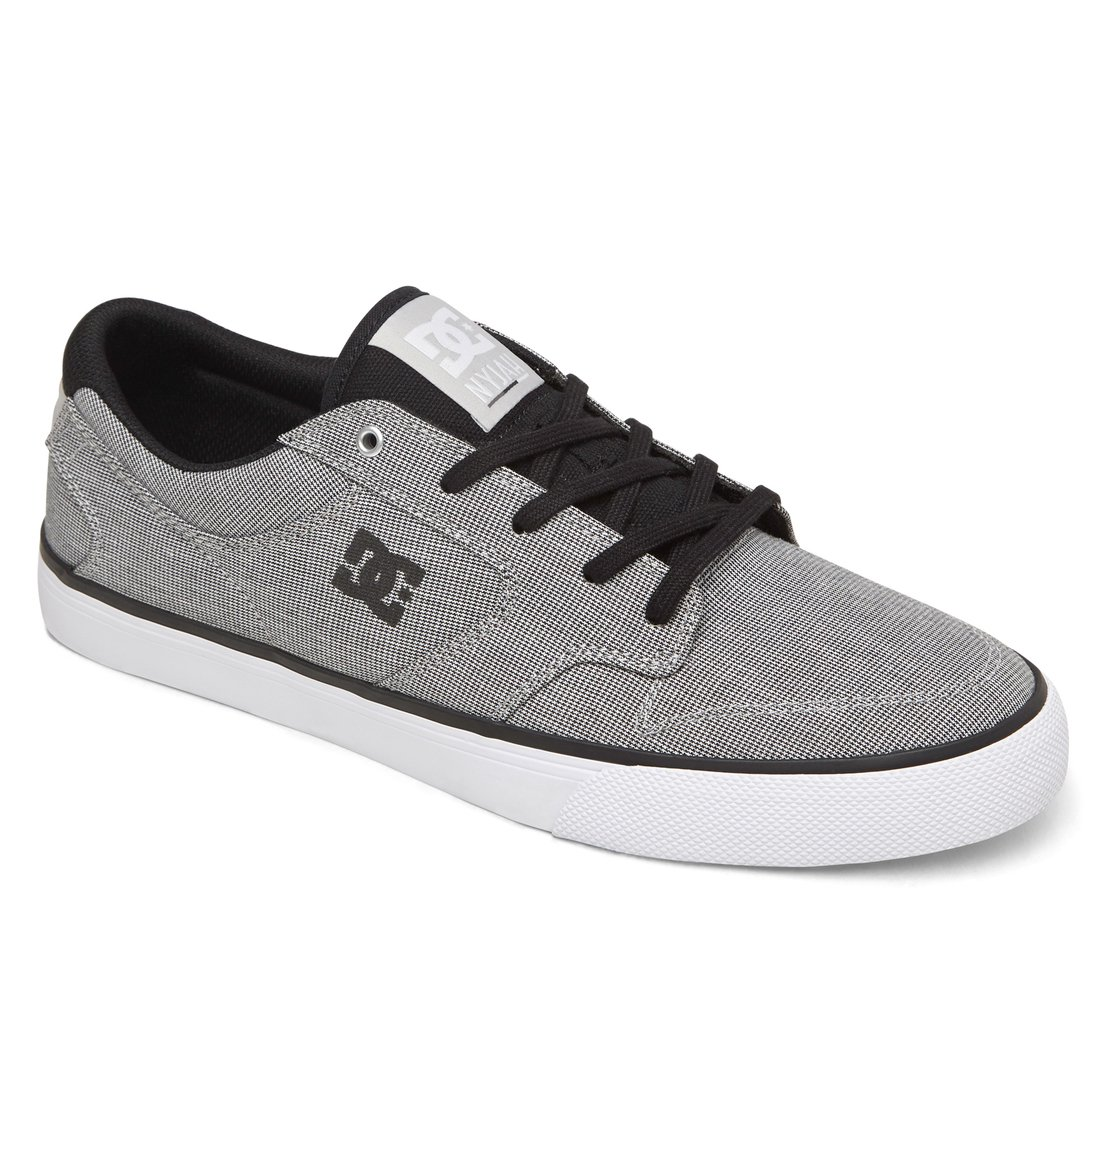 DC Shoes is an American company that specializes in footwear for action sports, including skateboarding and slubedcevo.ml company also manufactures apparel, bags, accessories, hats, shirts, and posters.